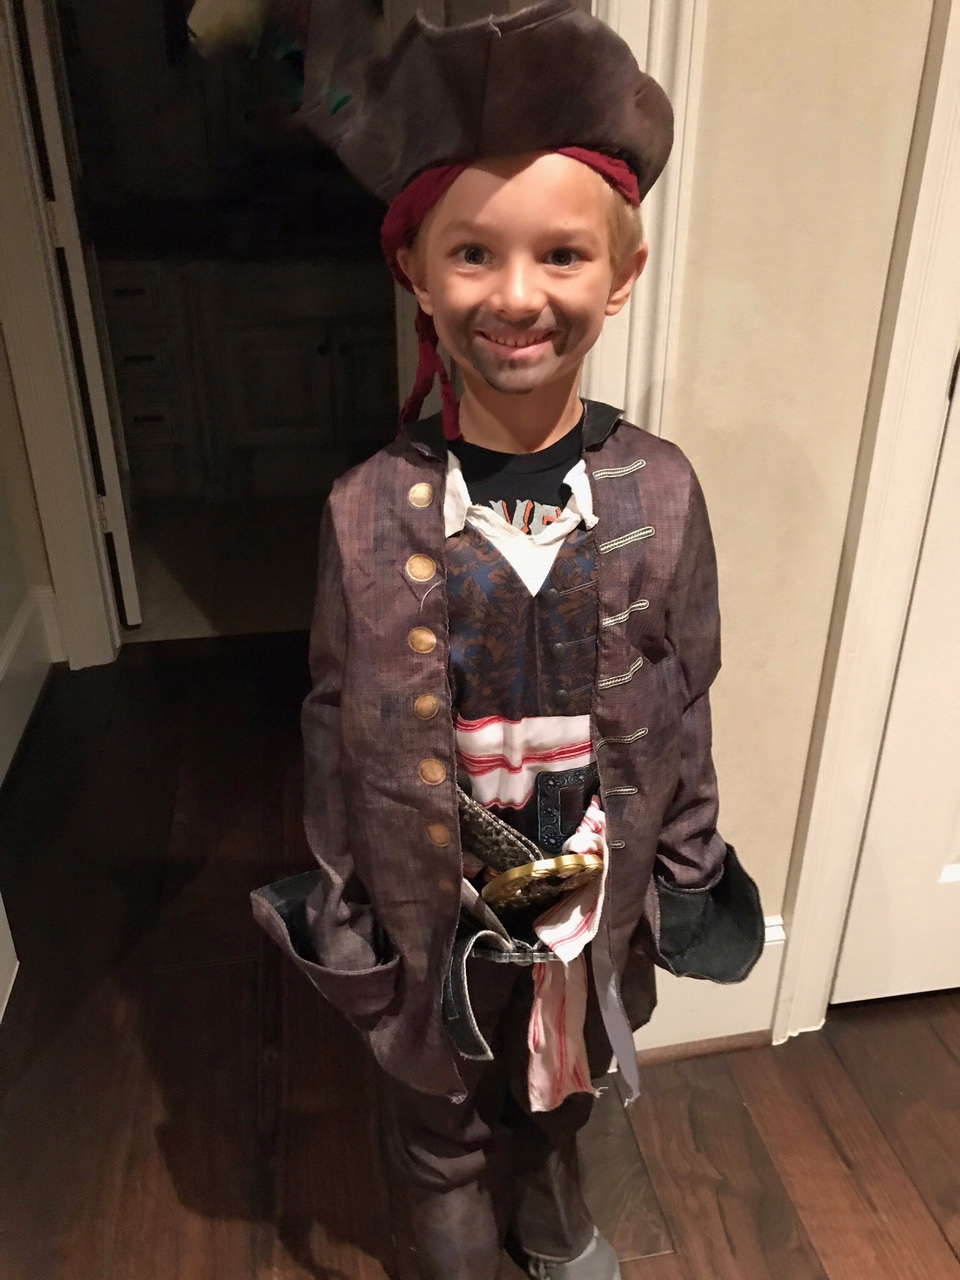 "<div class=""meta image-caption""><div class=""origin-logo origin-image none""><span>none</span></div><span class=""caption-text"">Anchor Ilona Carson's son Pierce shows off his Captain Jack Sparrow costume. Look at that beard!</span></div>"